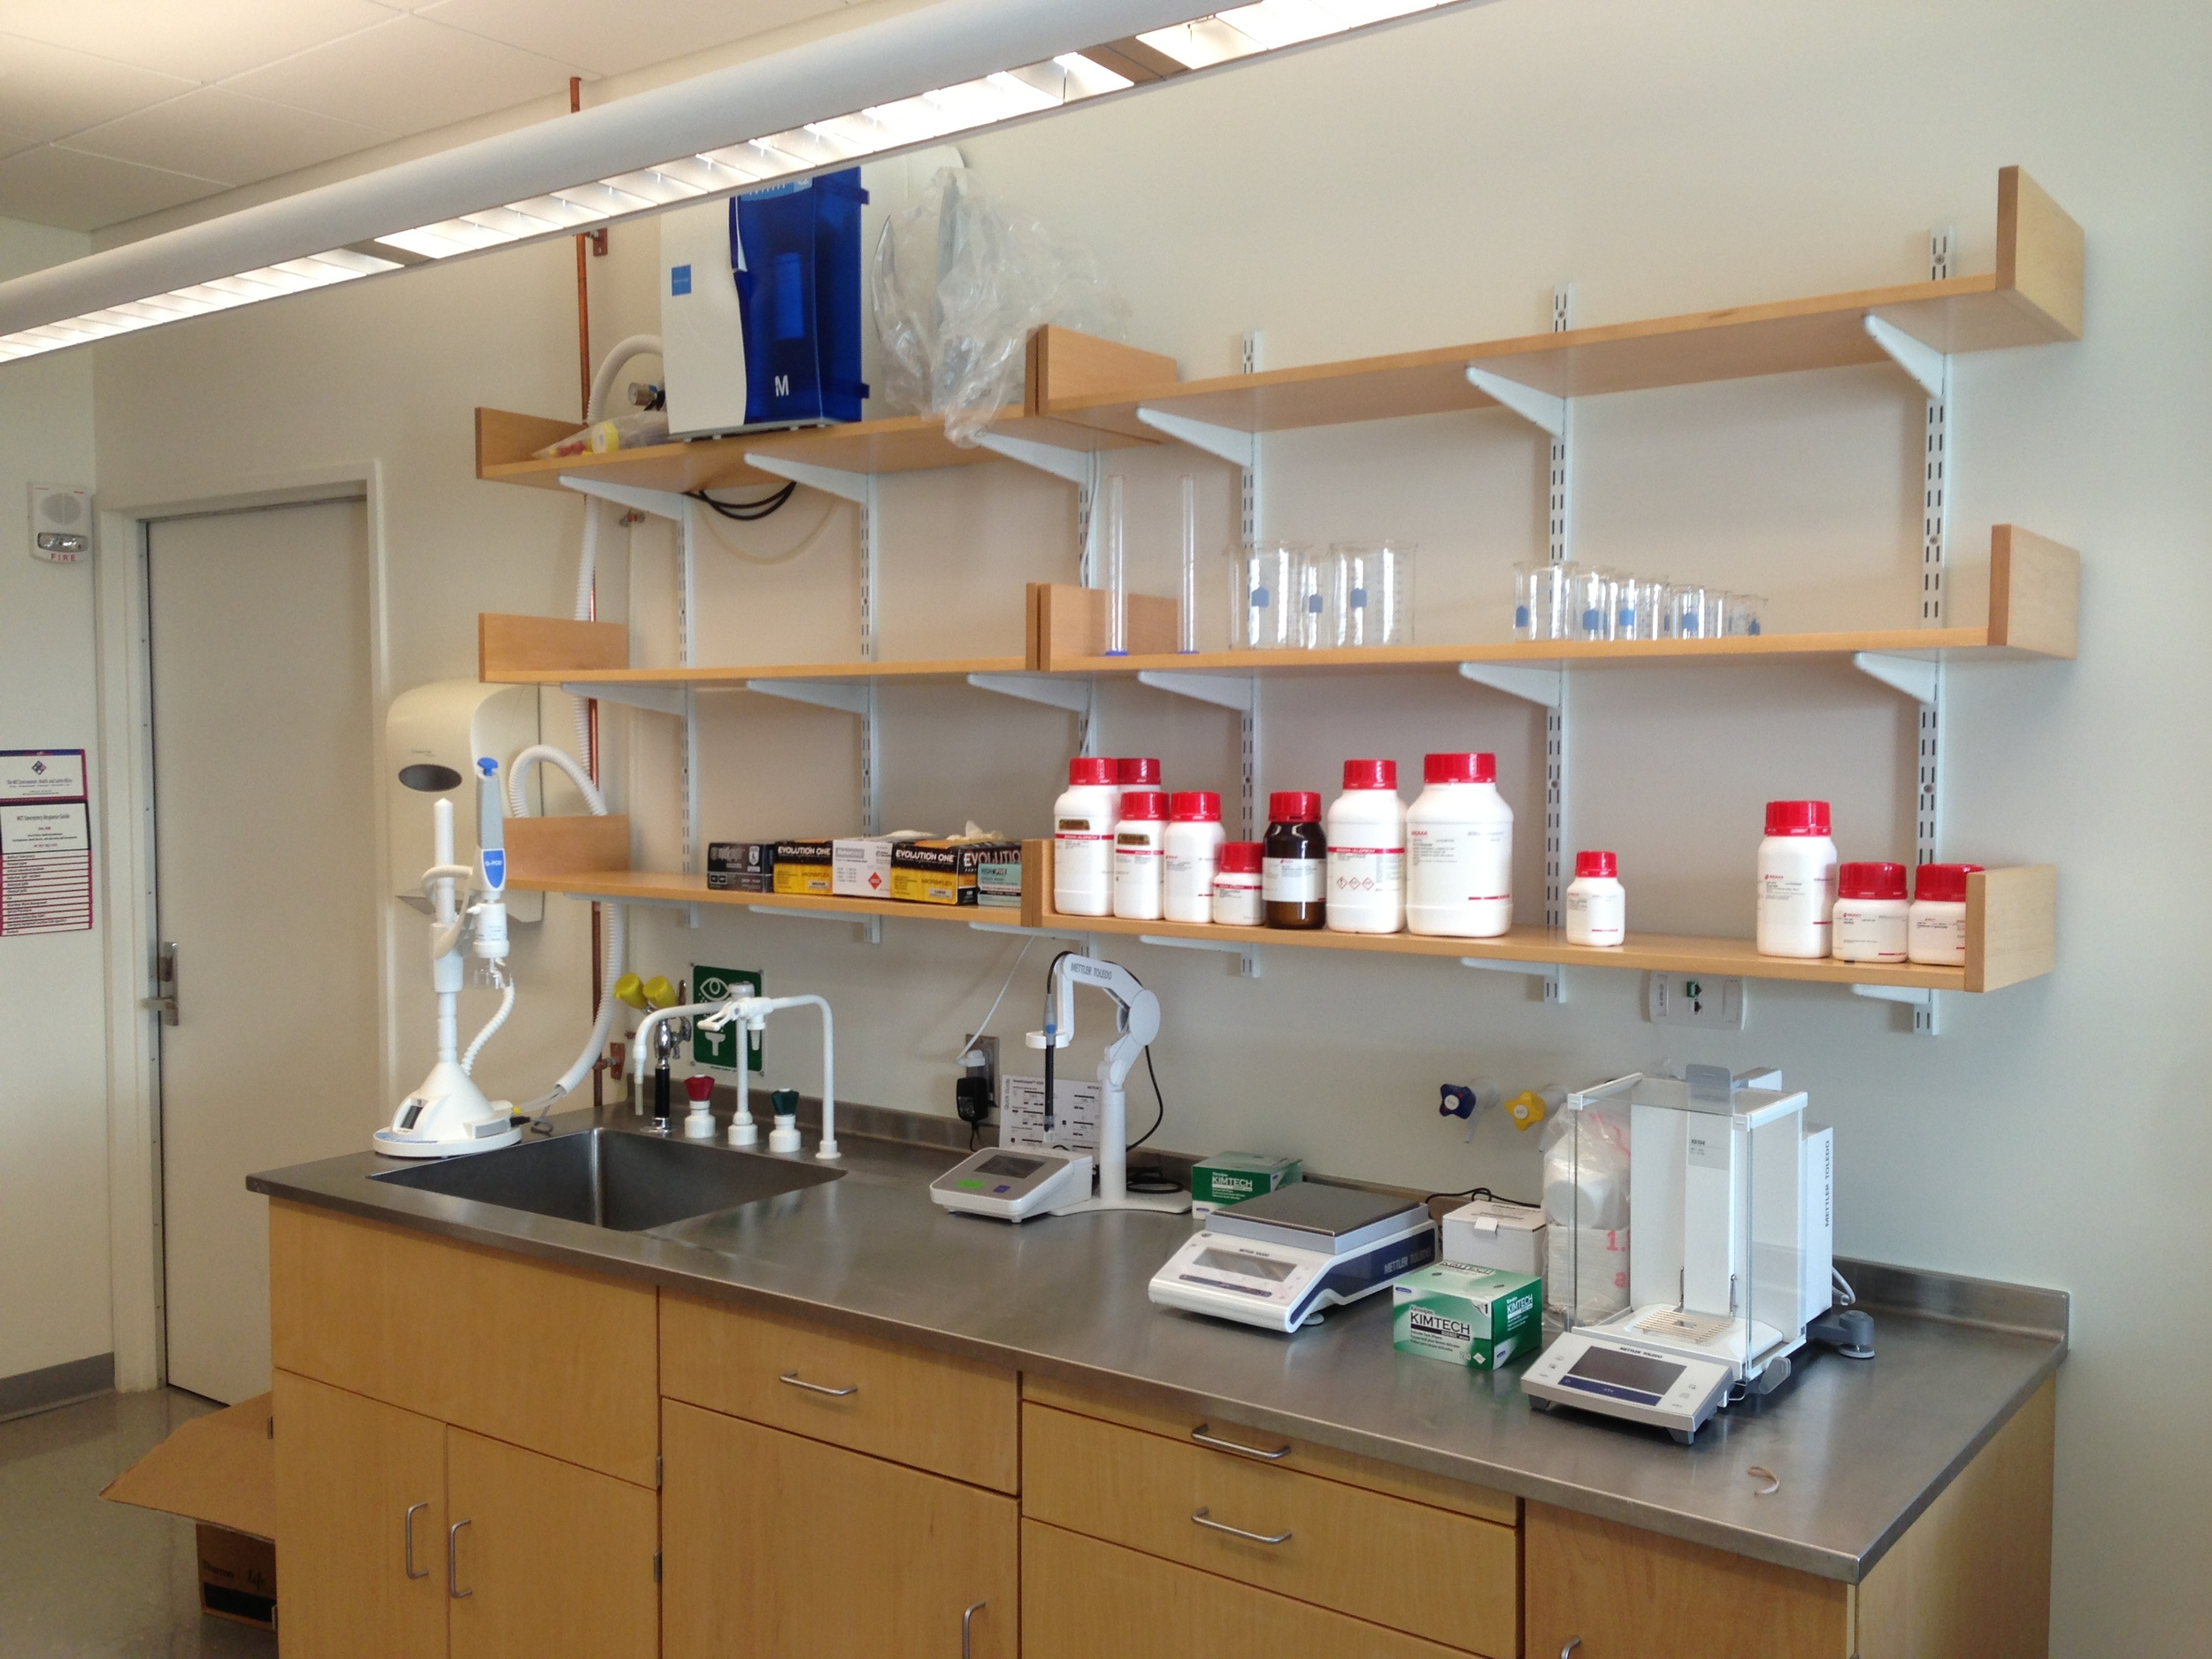 It's extremely gratifying to see at least some of the space start to look like a proper laboratory now.